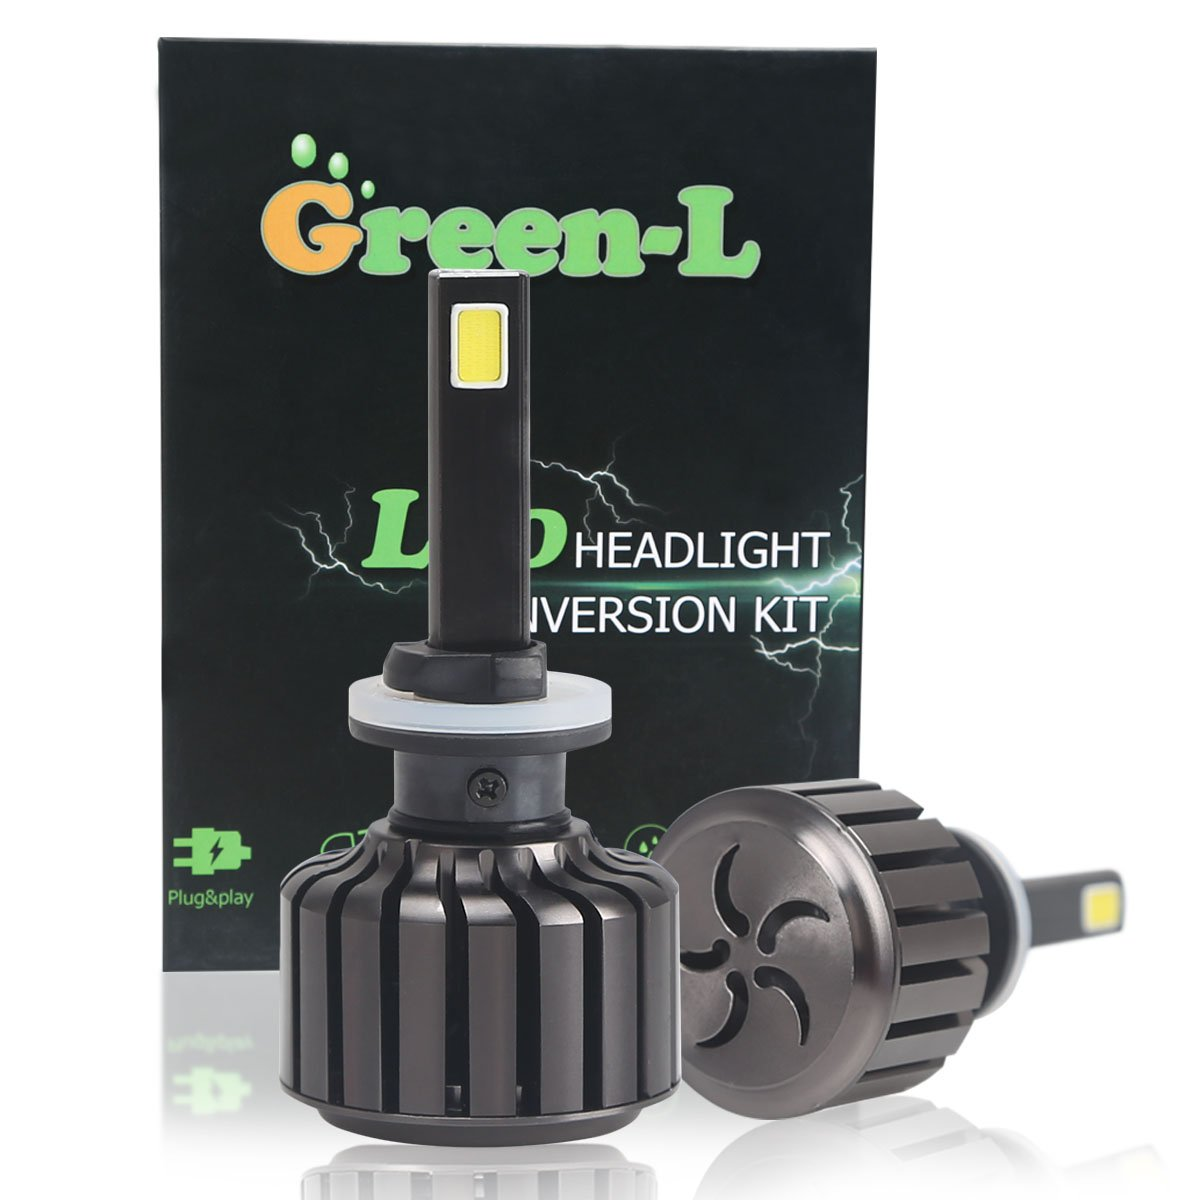 Green-L 9005 HB3 90W LED Headlight Bulbs All-in-One Conversion Kit COB Chip Car Headlight Bulbs Kit Lamp 9000lm 6000K 12V Replace for Halogen or HID Bulbs (Pack of 2pcs) Carheadlights-6N-UK